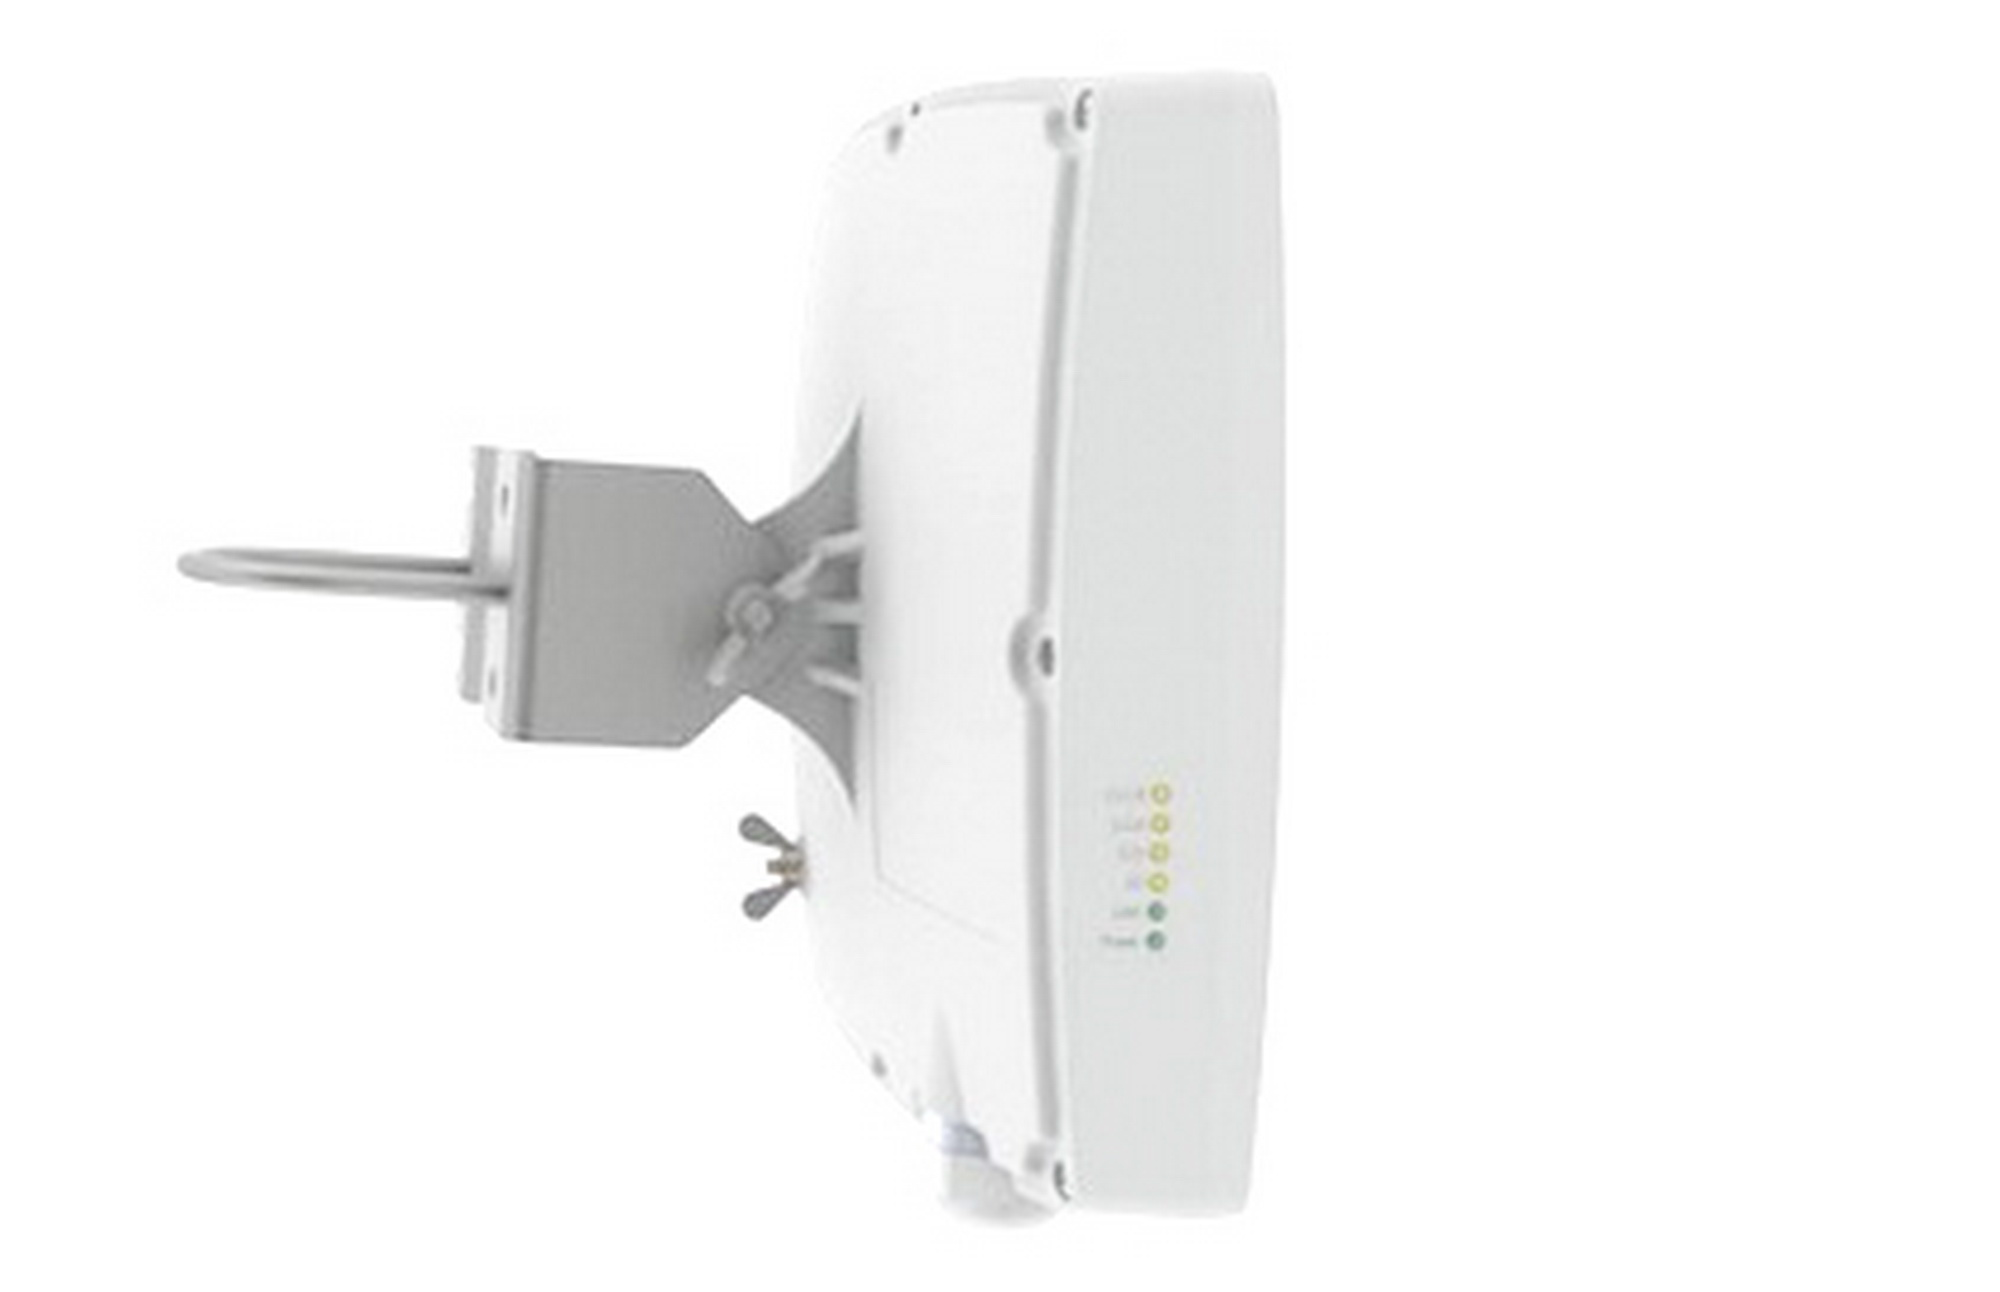 2.4G economical outdoor monitoring equipment,long-distance monitoring transmission solution